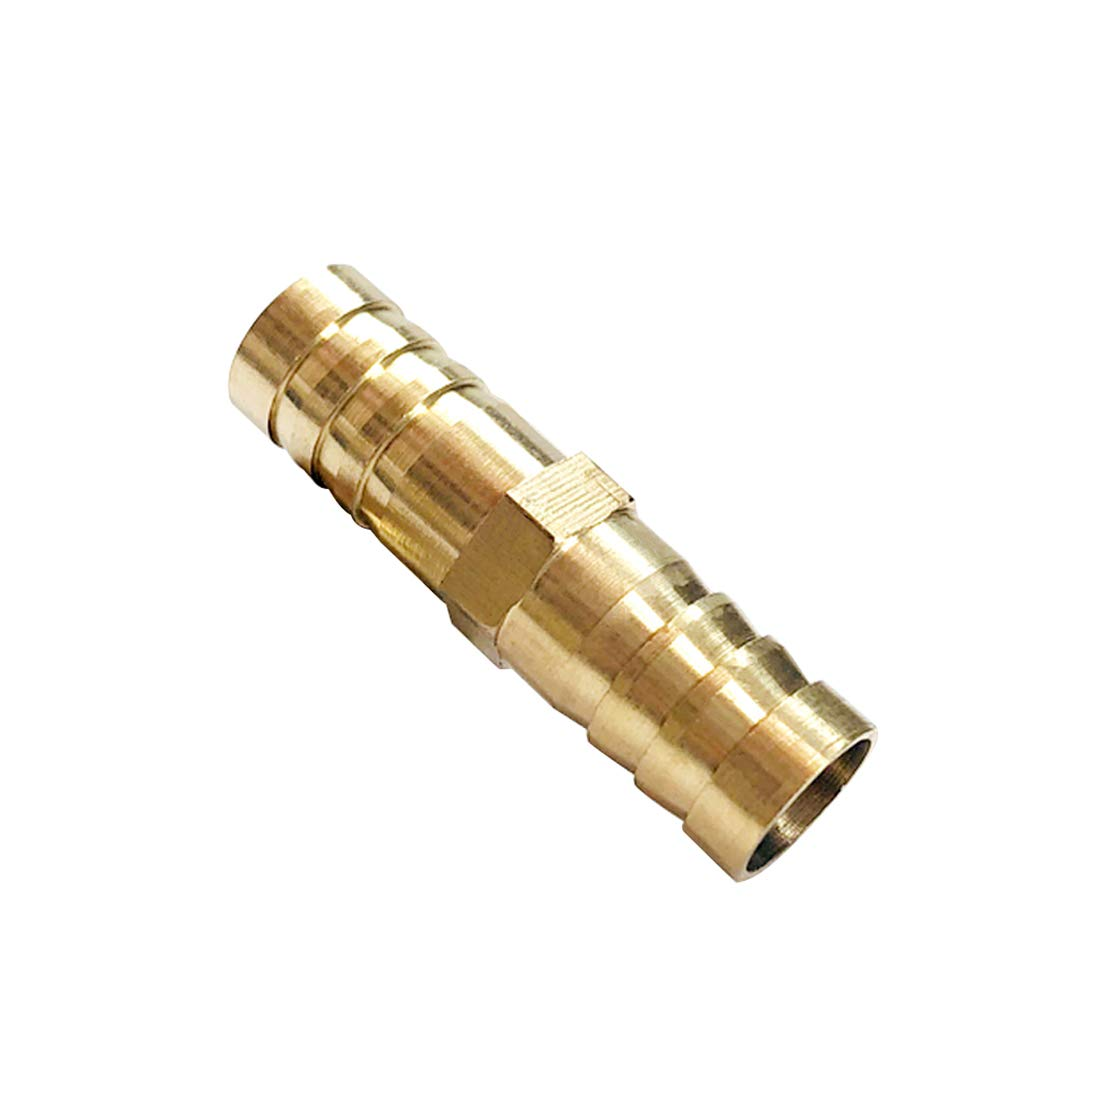 Pack of 5 LTWFITTING Brass Barb Hose Reducing Splicer Mender 1//2 ID Hose x5//8 ID Hose Fitting Air Water Fuel Boat